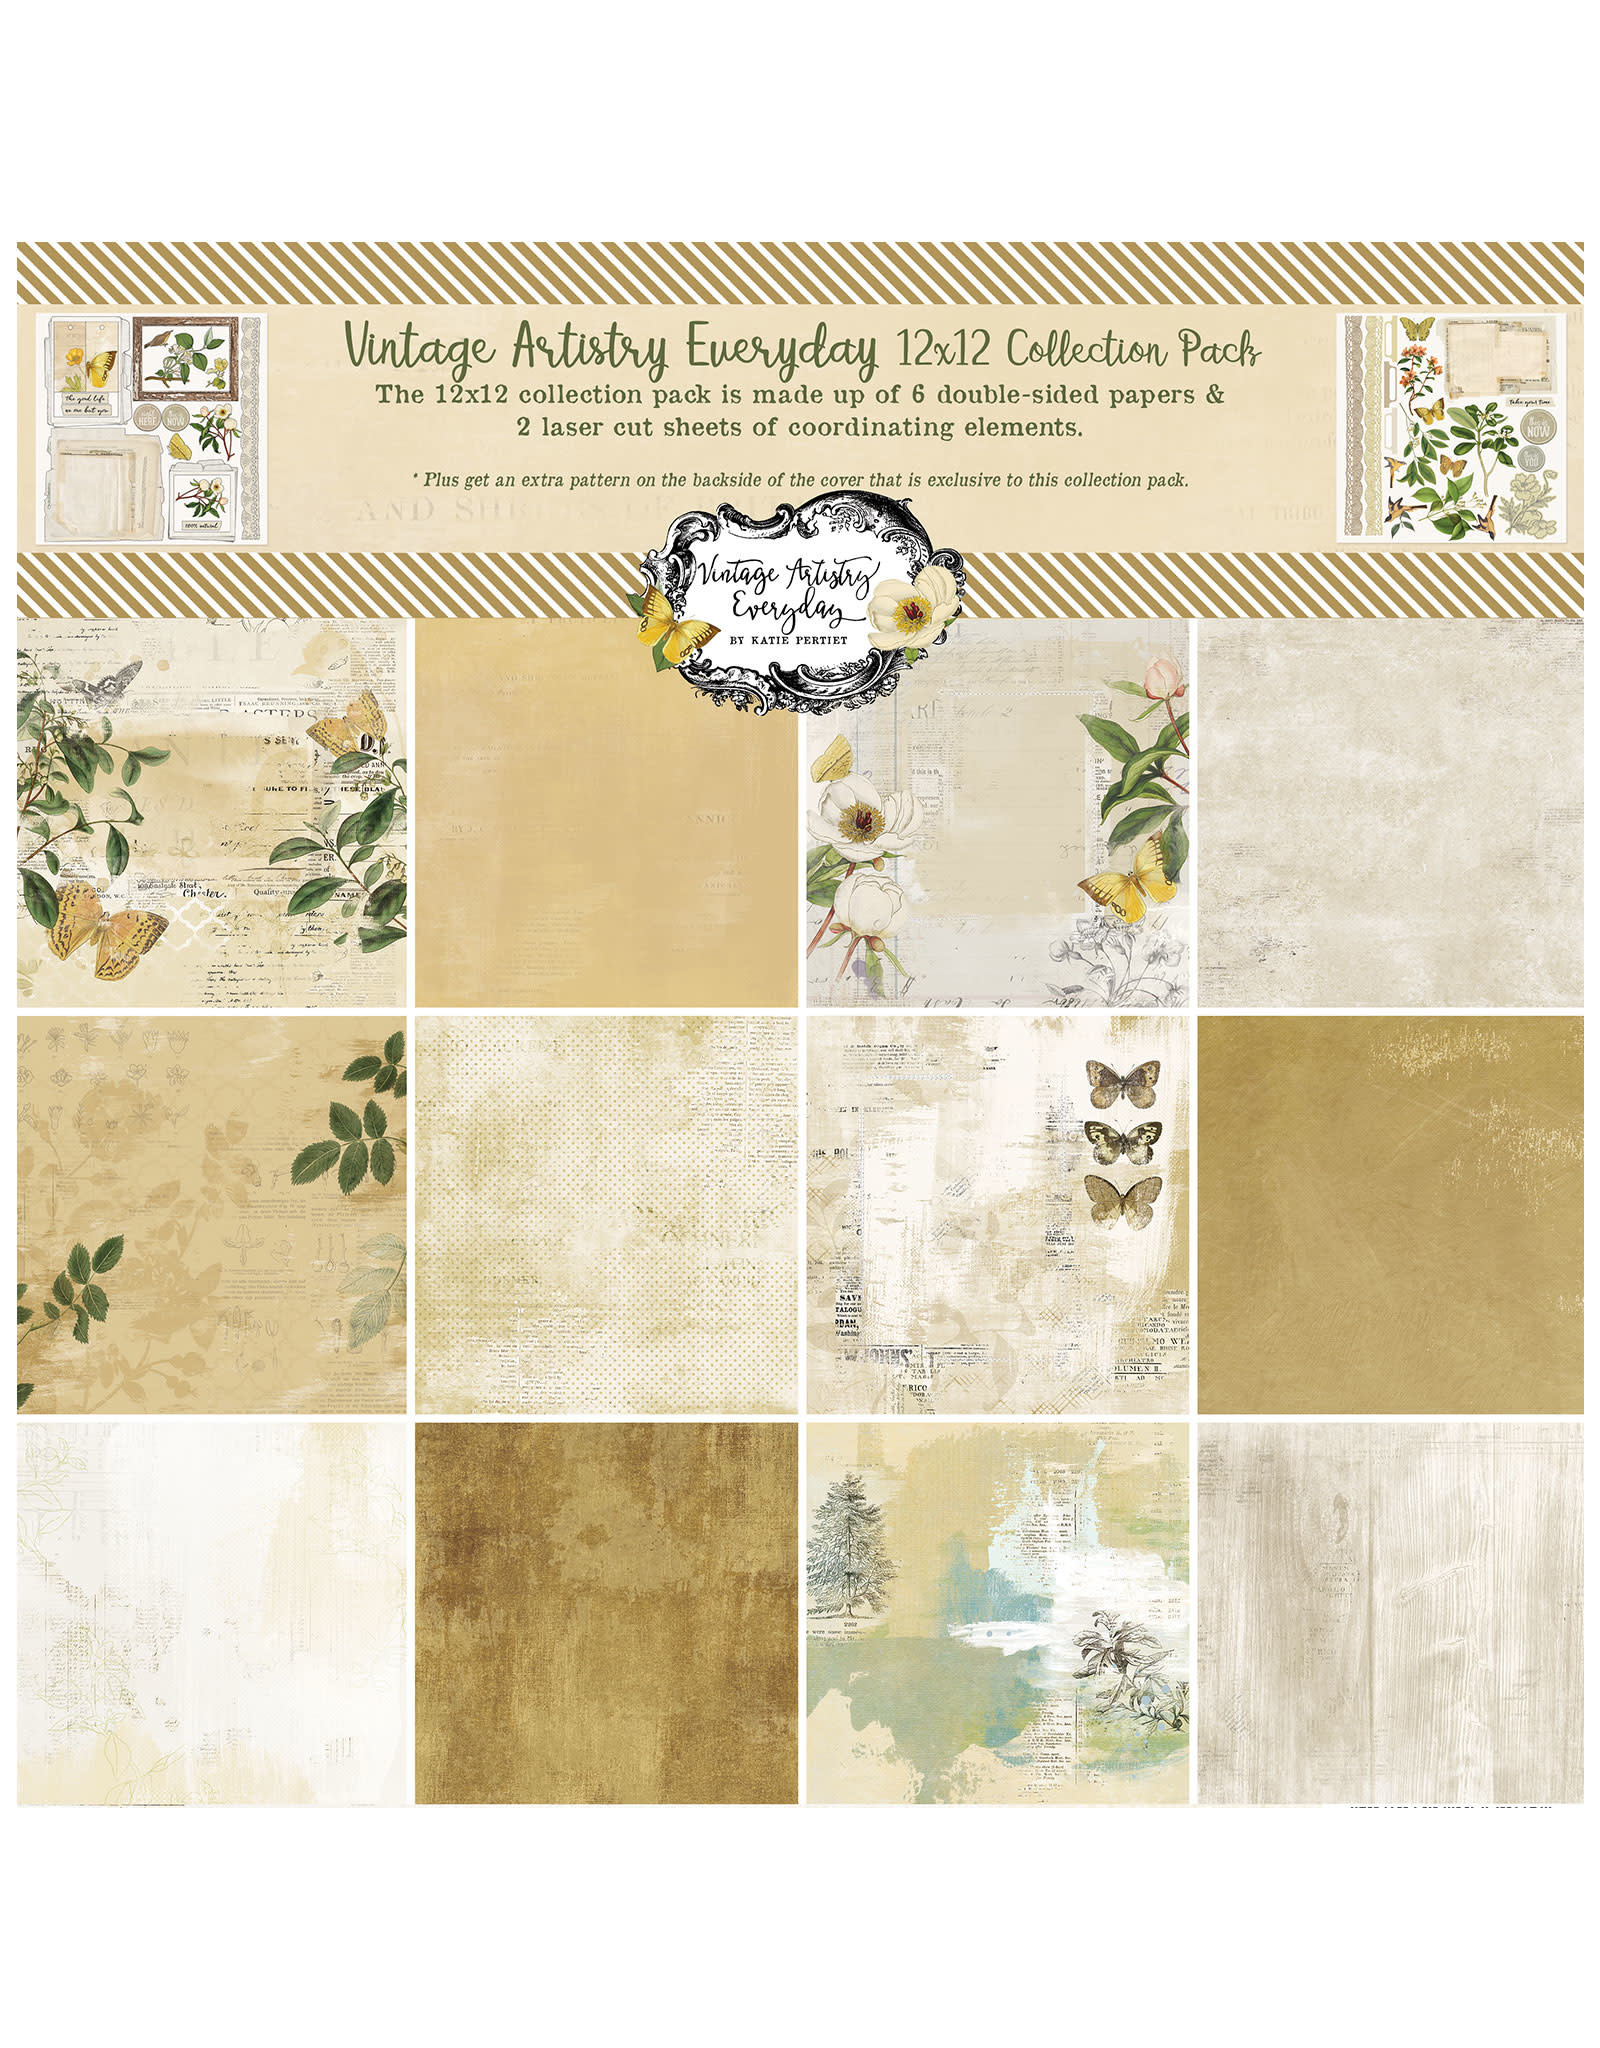 49 AND MARKET 12X12 Collection Pack, Vintage Artistry Everyday